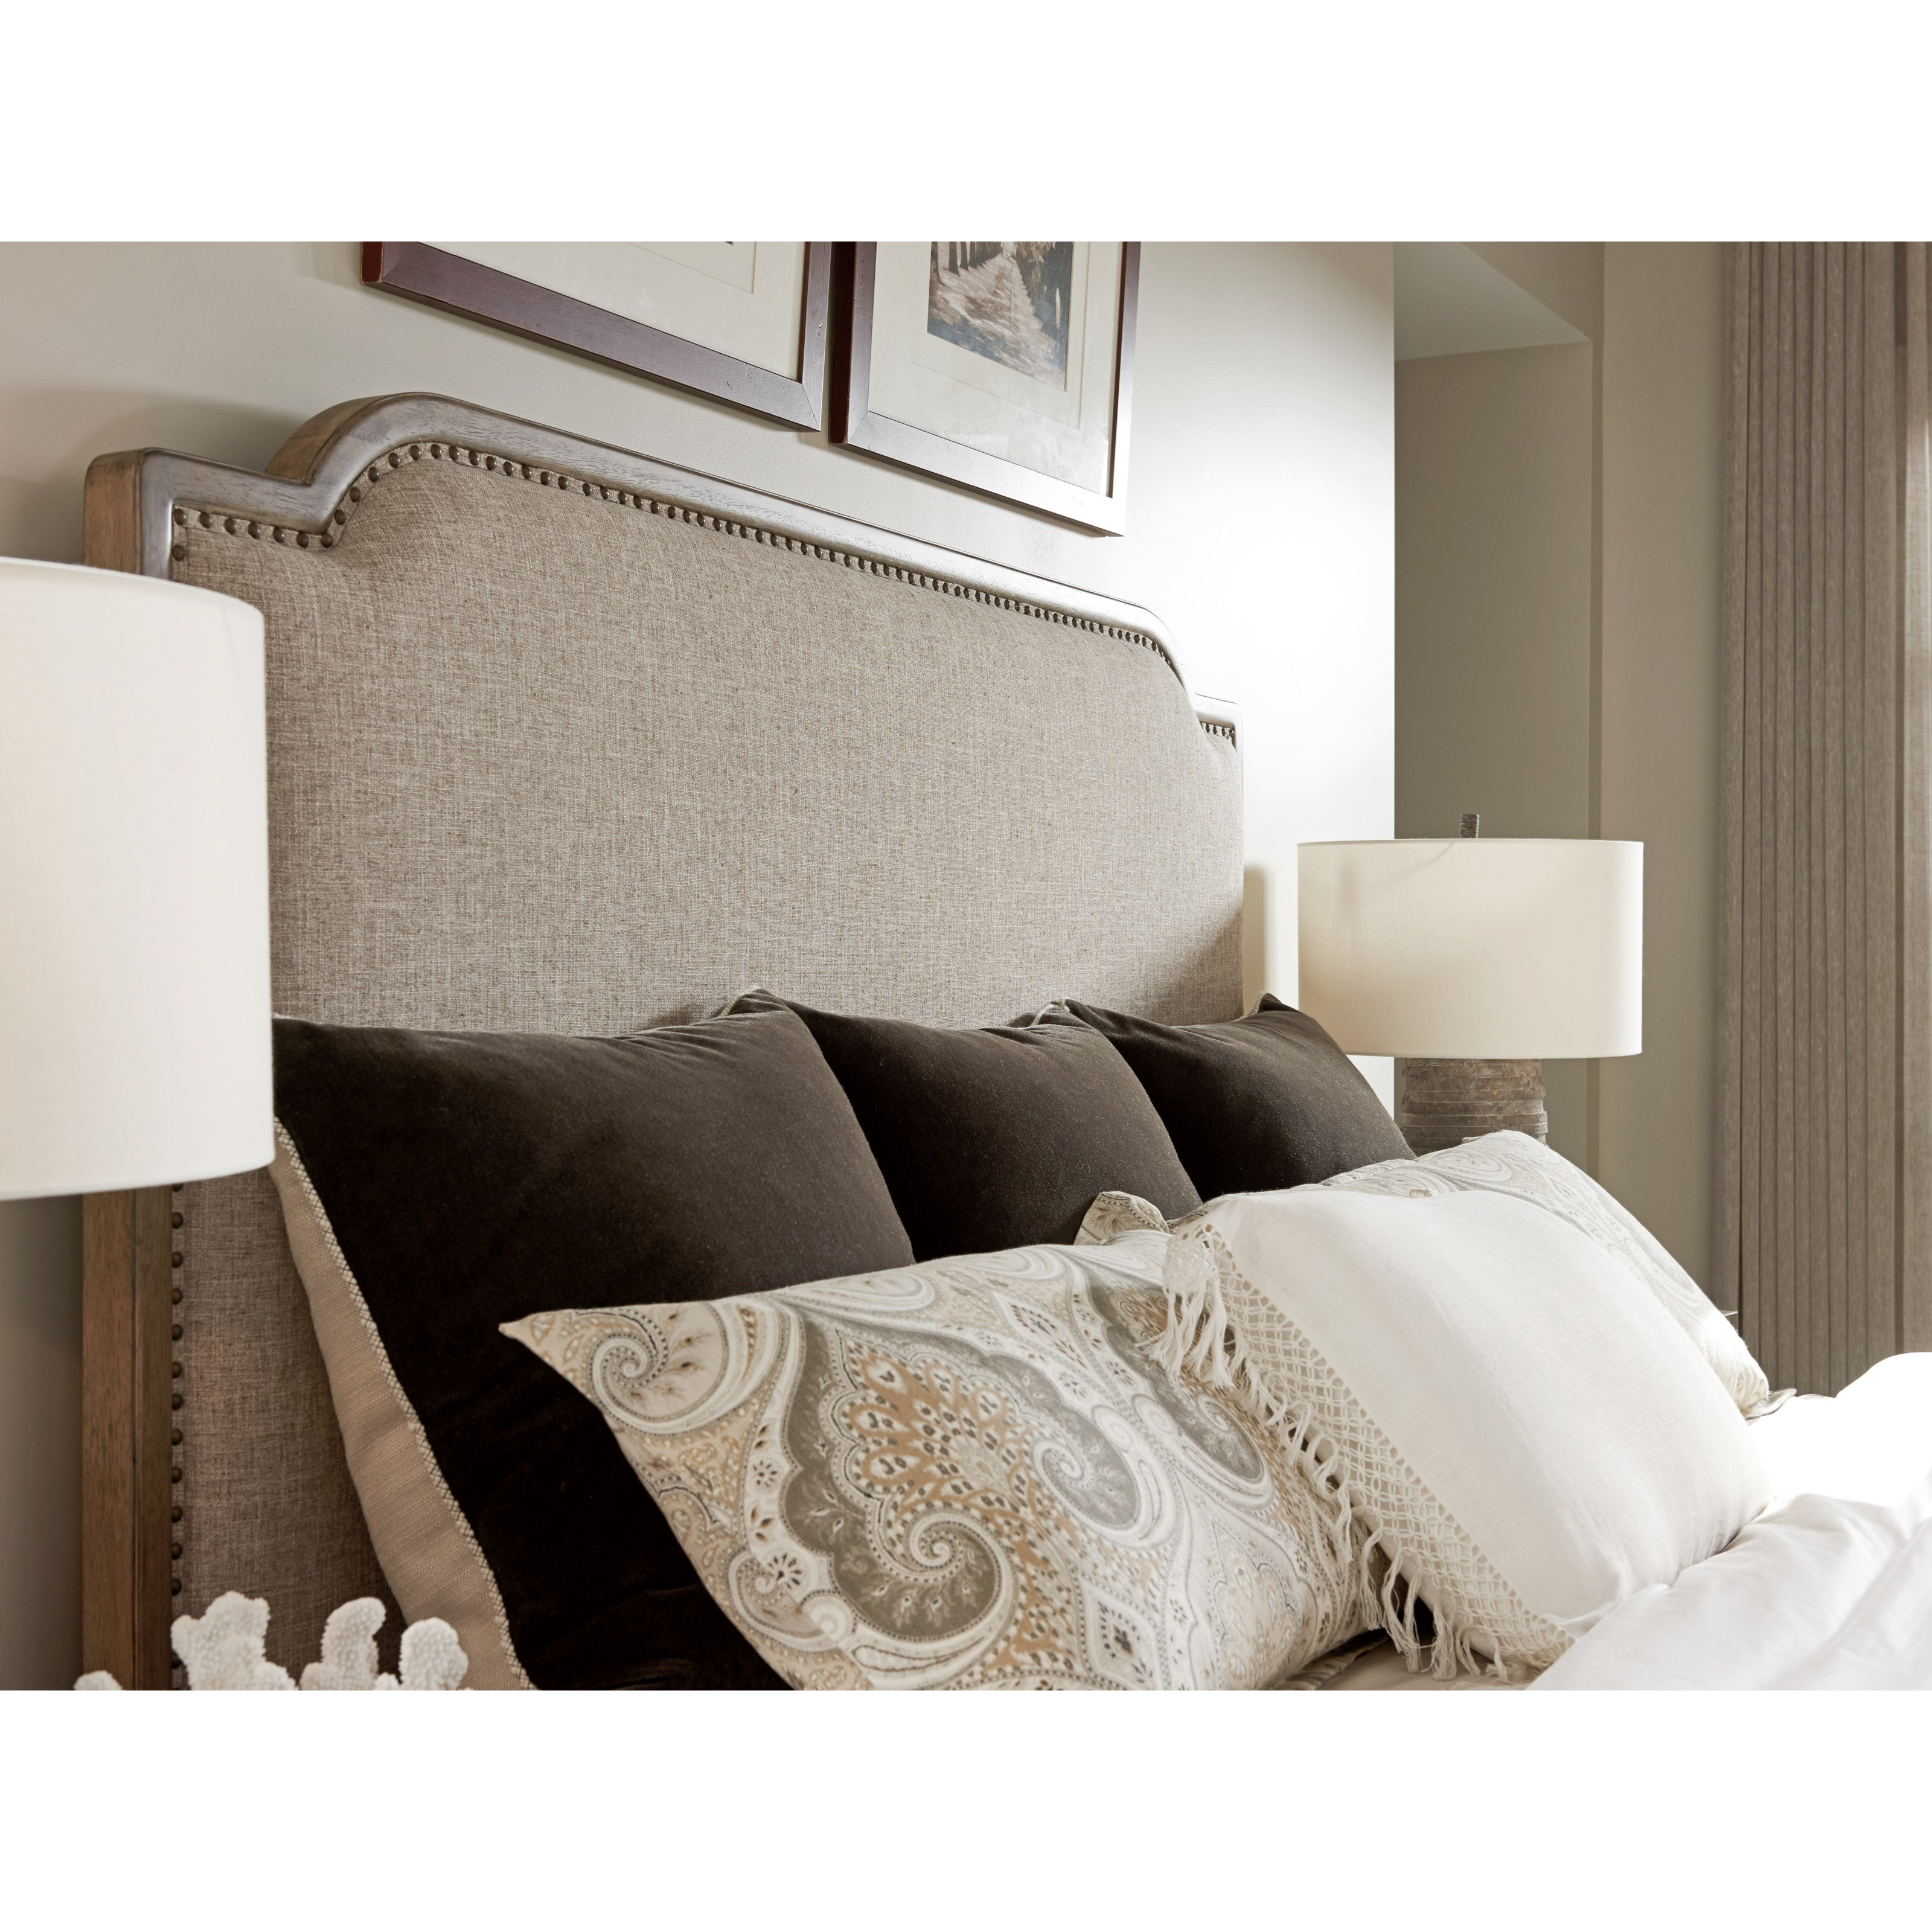 Cypress Point Stone Harbour Upholstered Headboard 5/0 Quee by Tommy Bahama Home at Jacksonville Furniture Mart